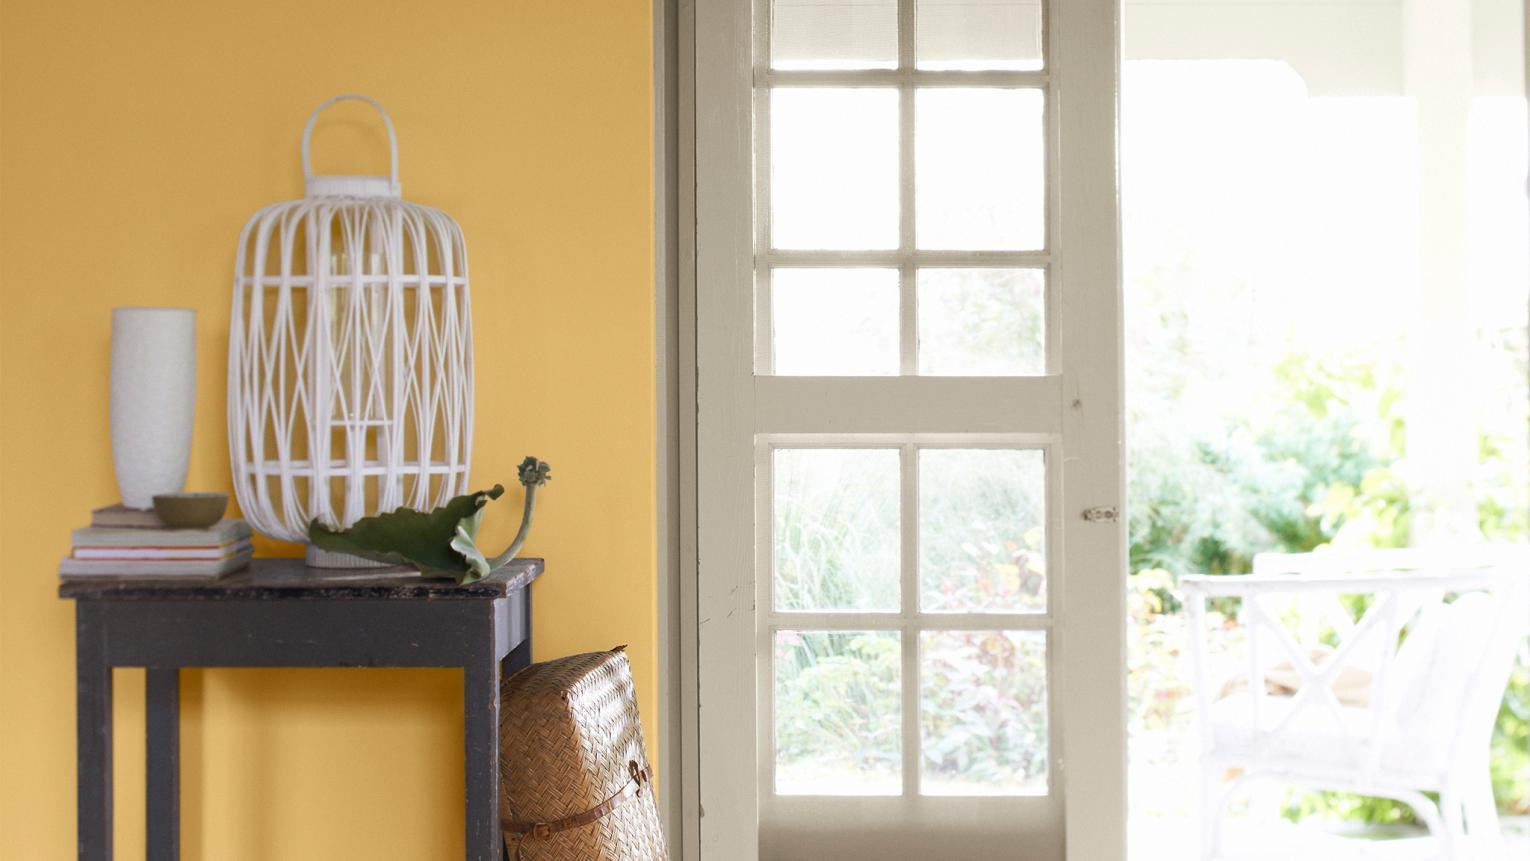 Infuse your hallway with warmth and energy with a sunny colour scheme of yellow and crisp white.